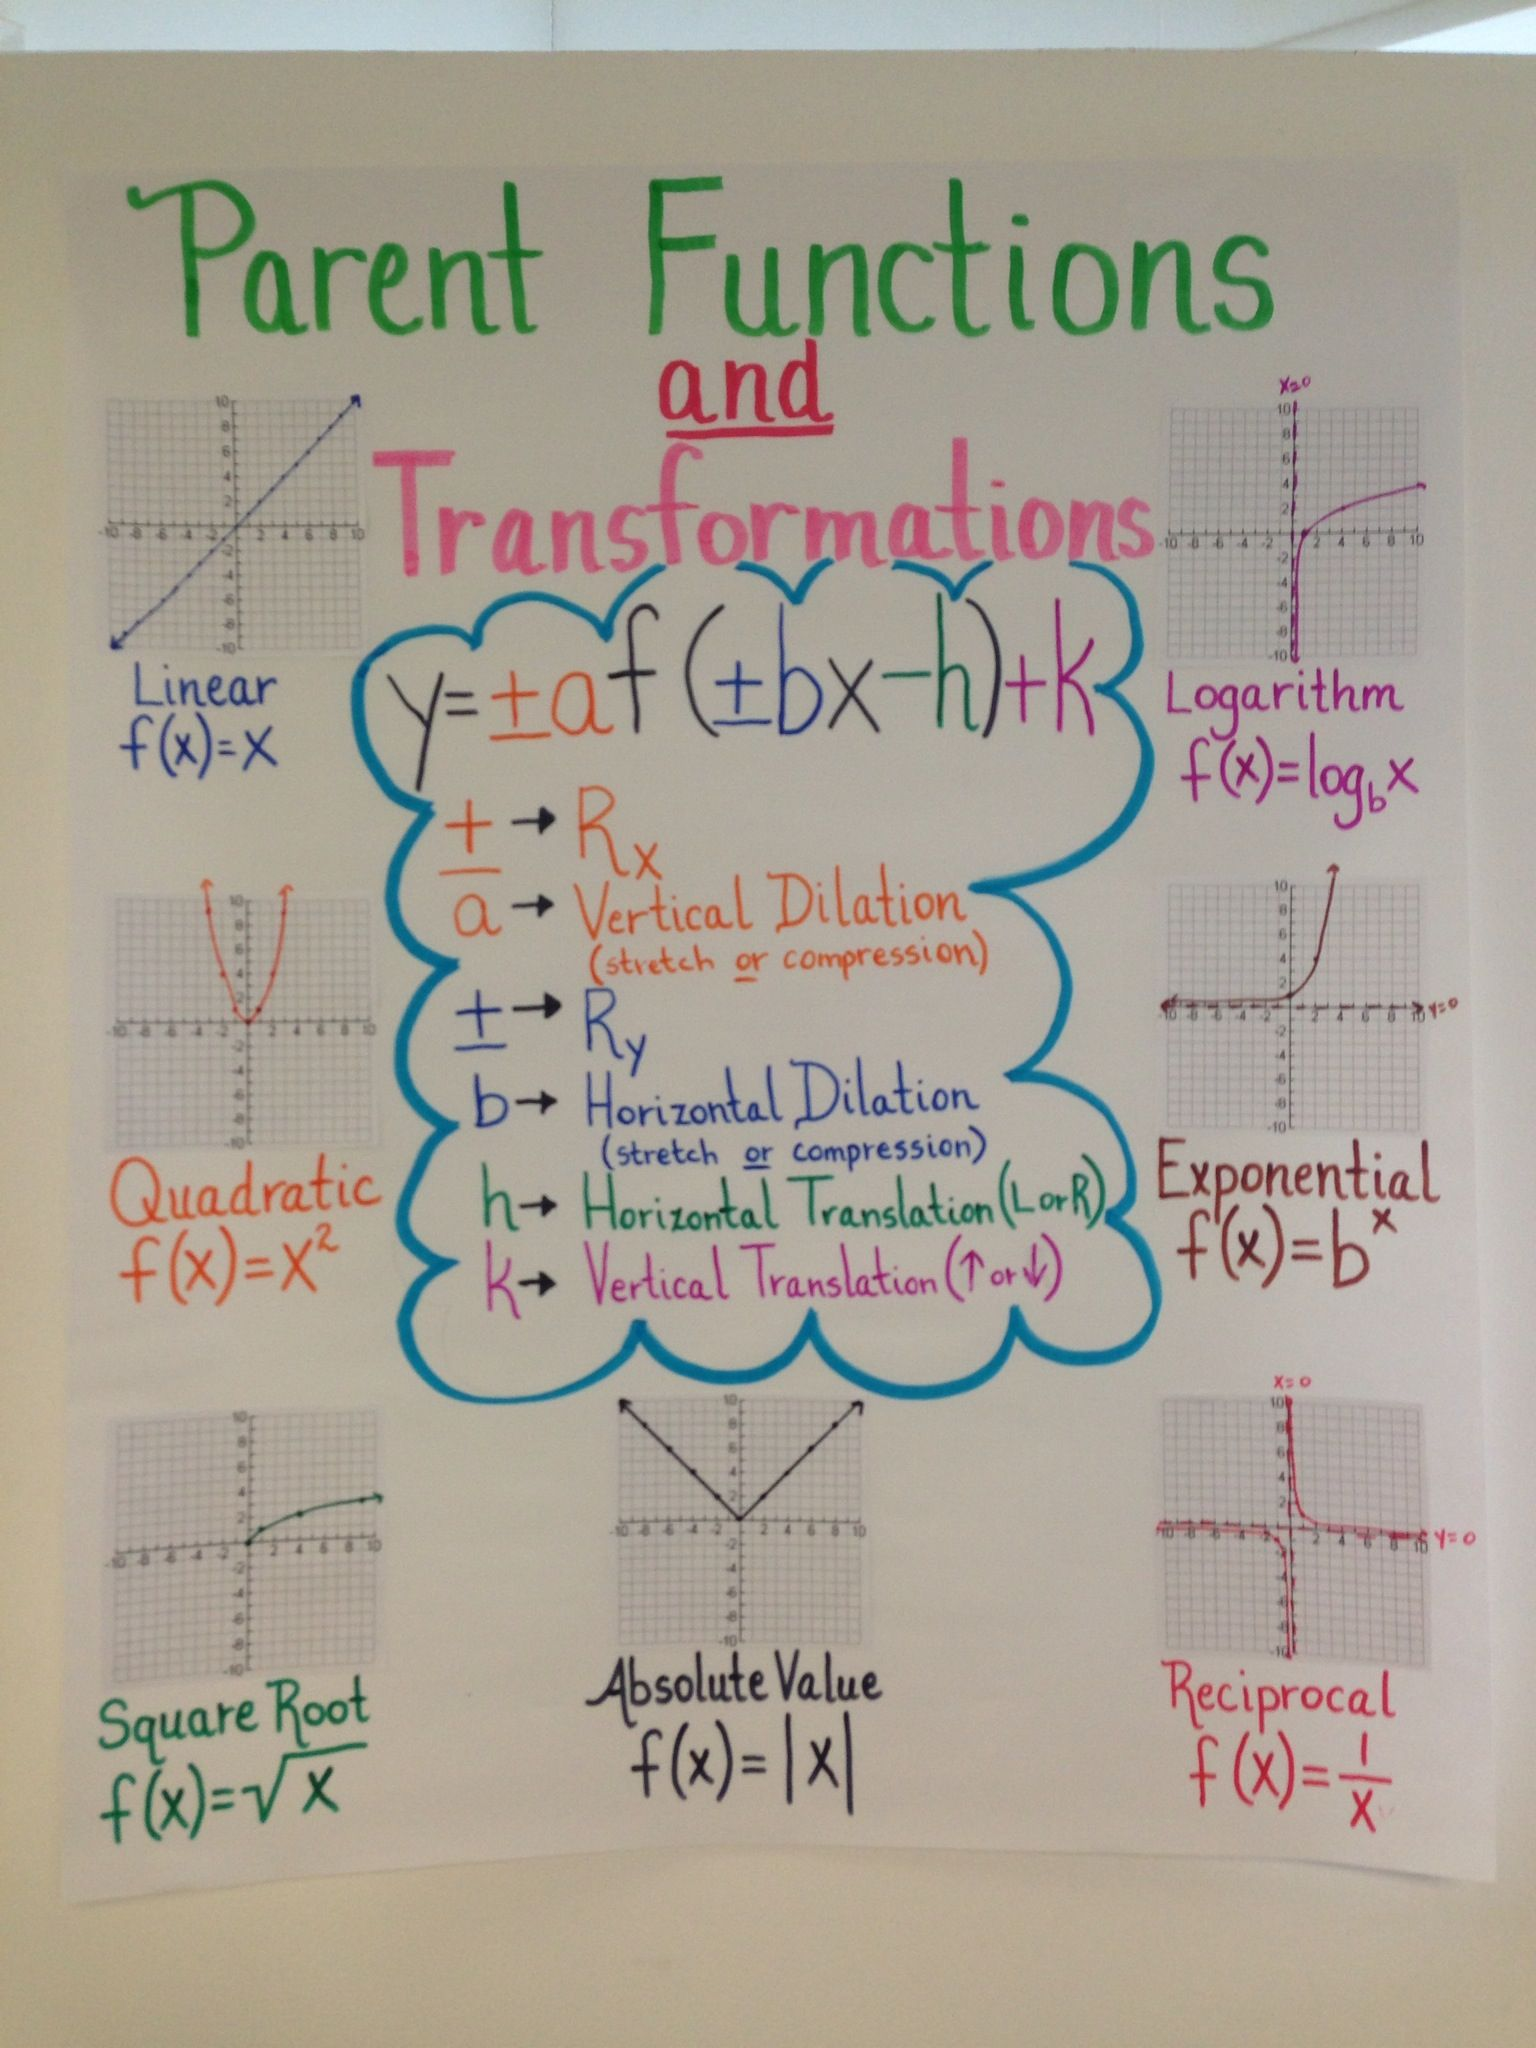 Anchor Chart For Algebra Ii Eoc Review On Parent Functions